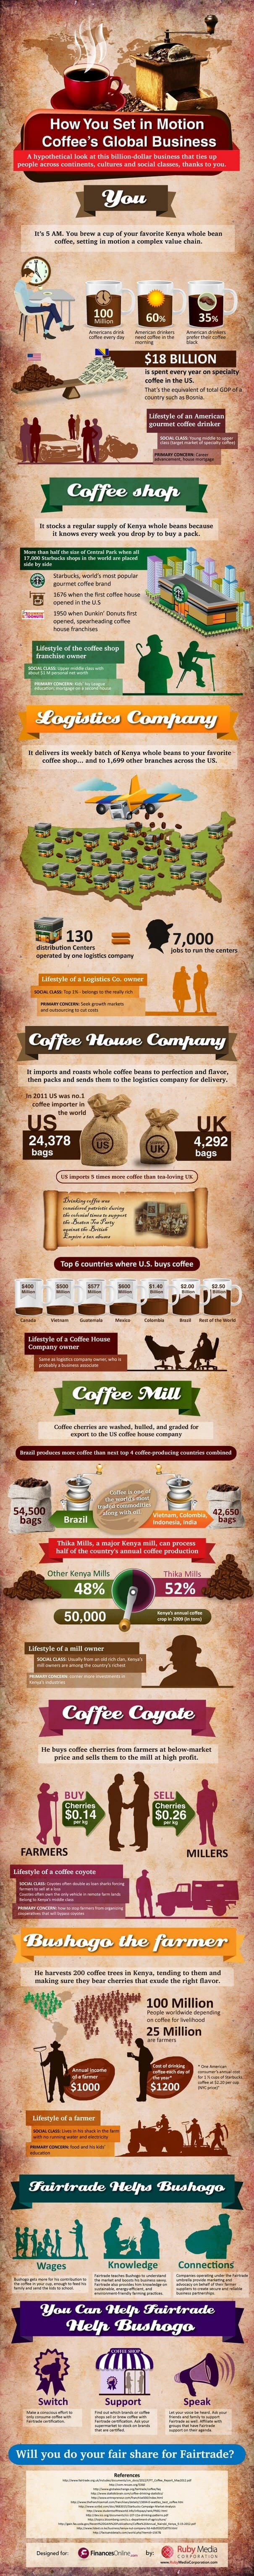 How You Set in Motion Coffees Global Business Infographic